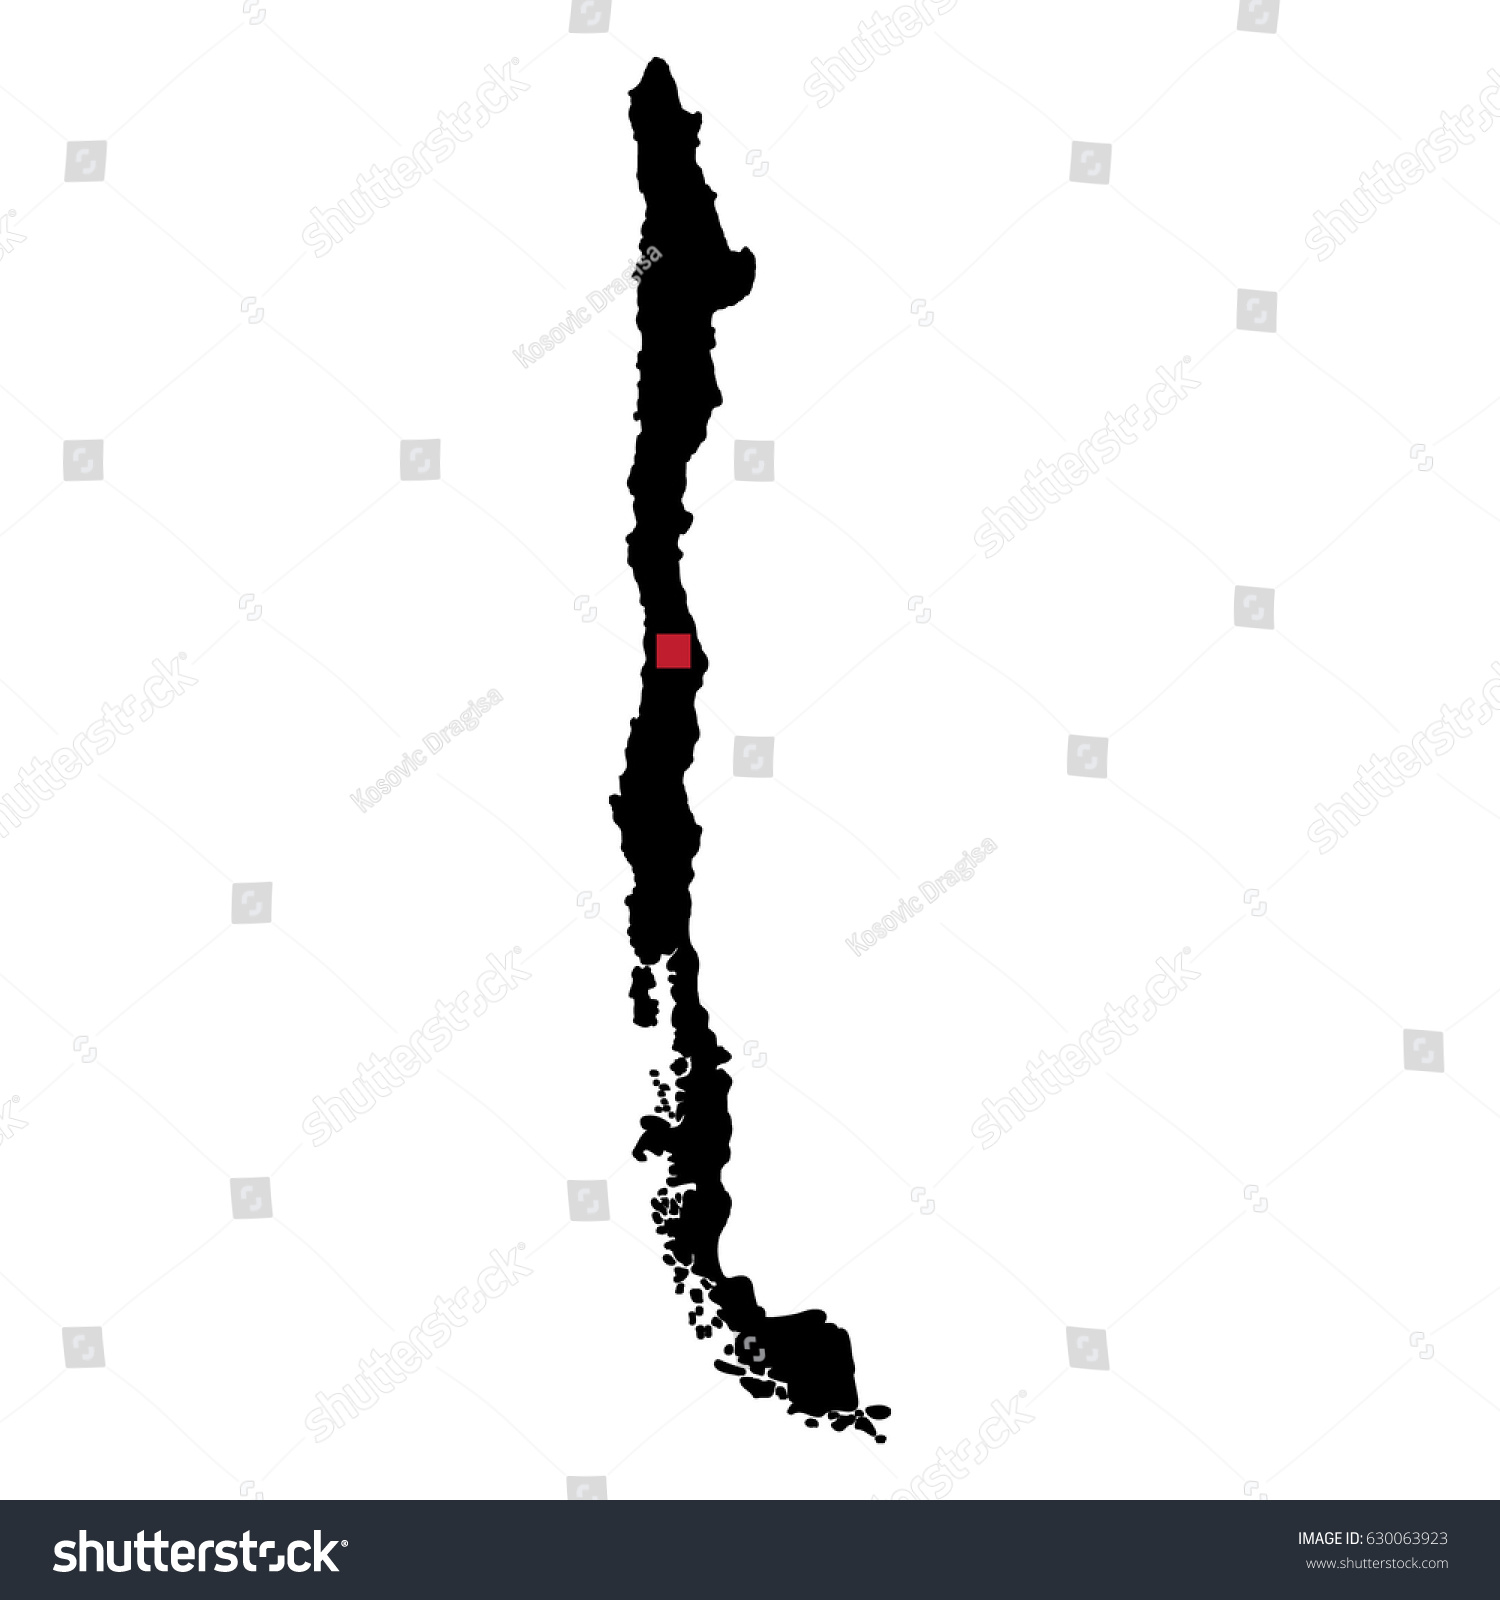 Map Silhouette Chile Capital City Stock Vector Royalty Free 630063923